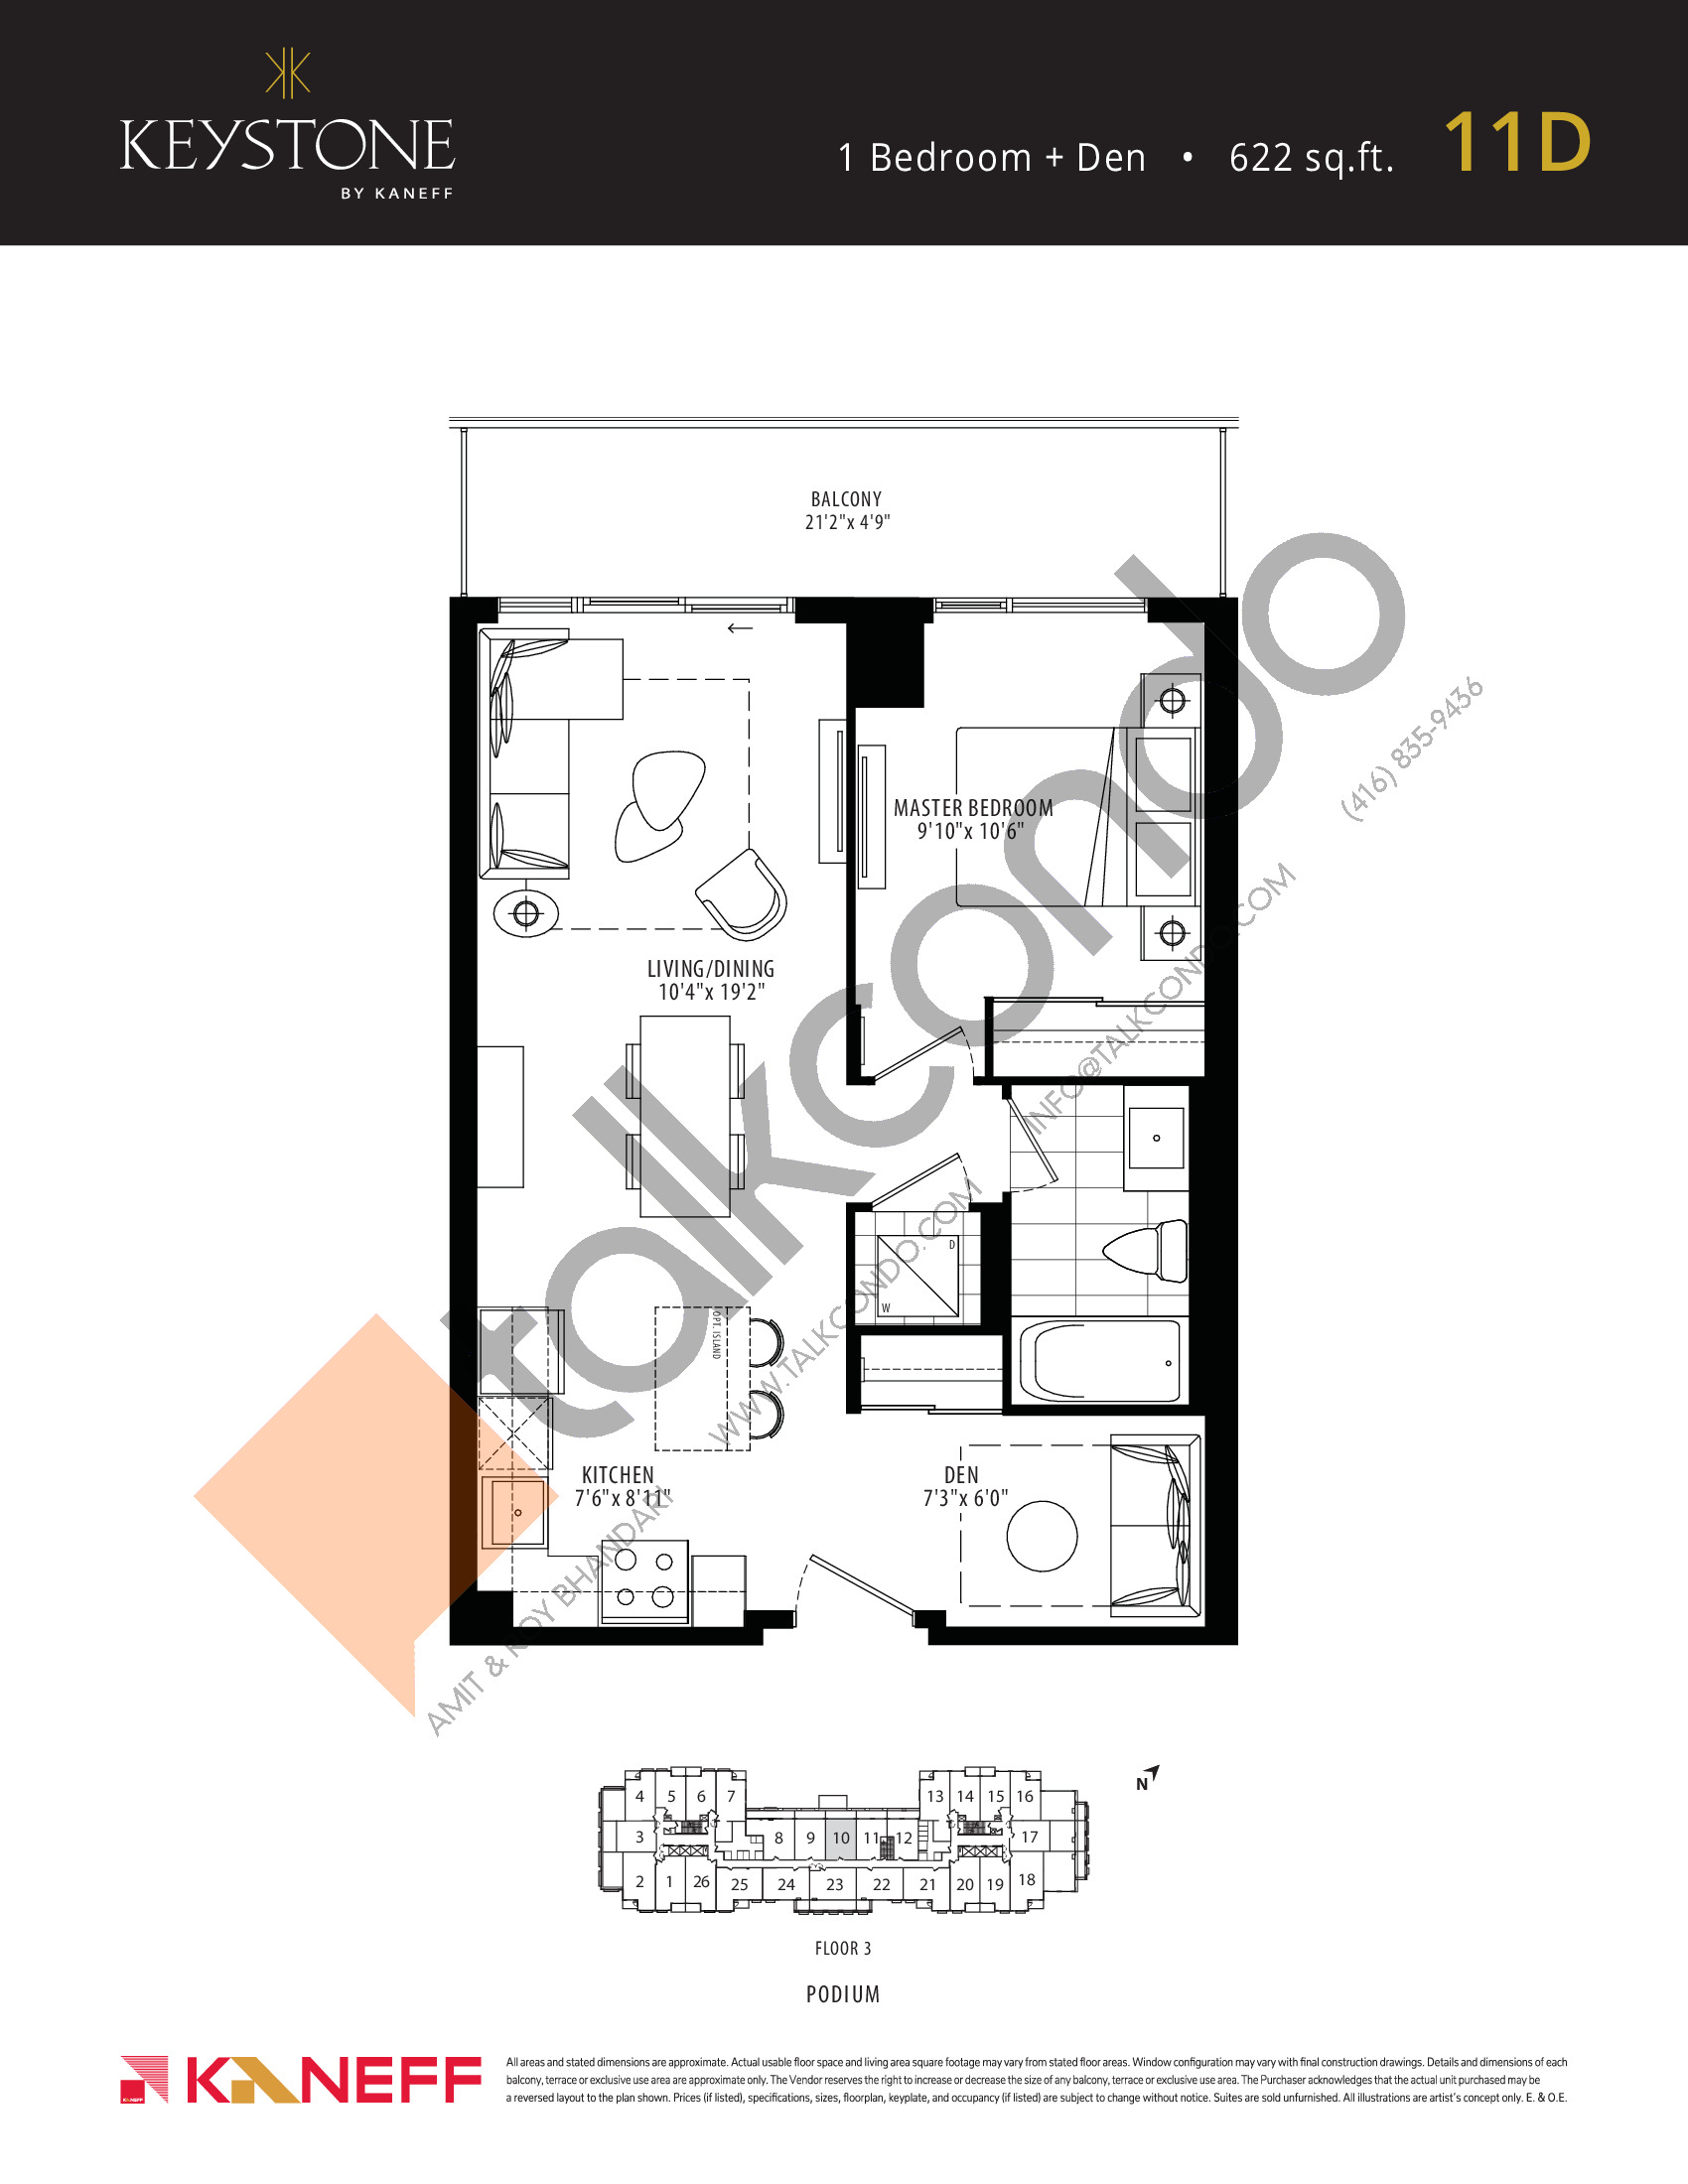 11D Floor Plan at Keystone Condos Phase 2 - 622 sq.ft